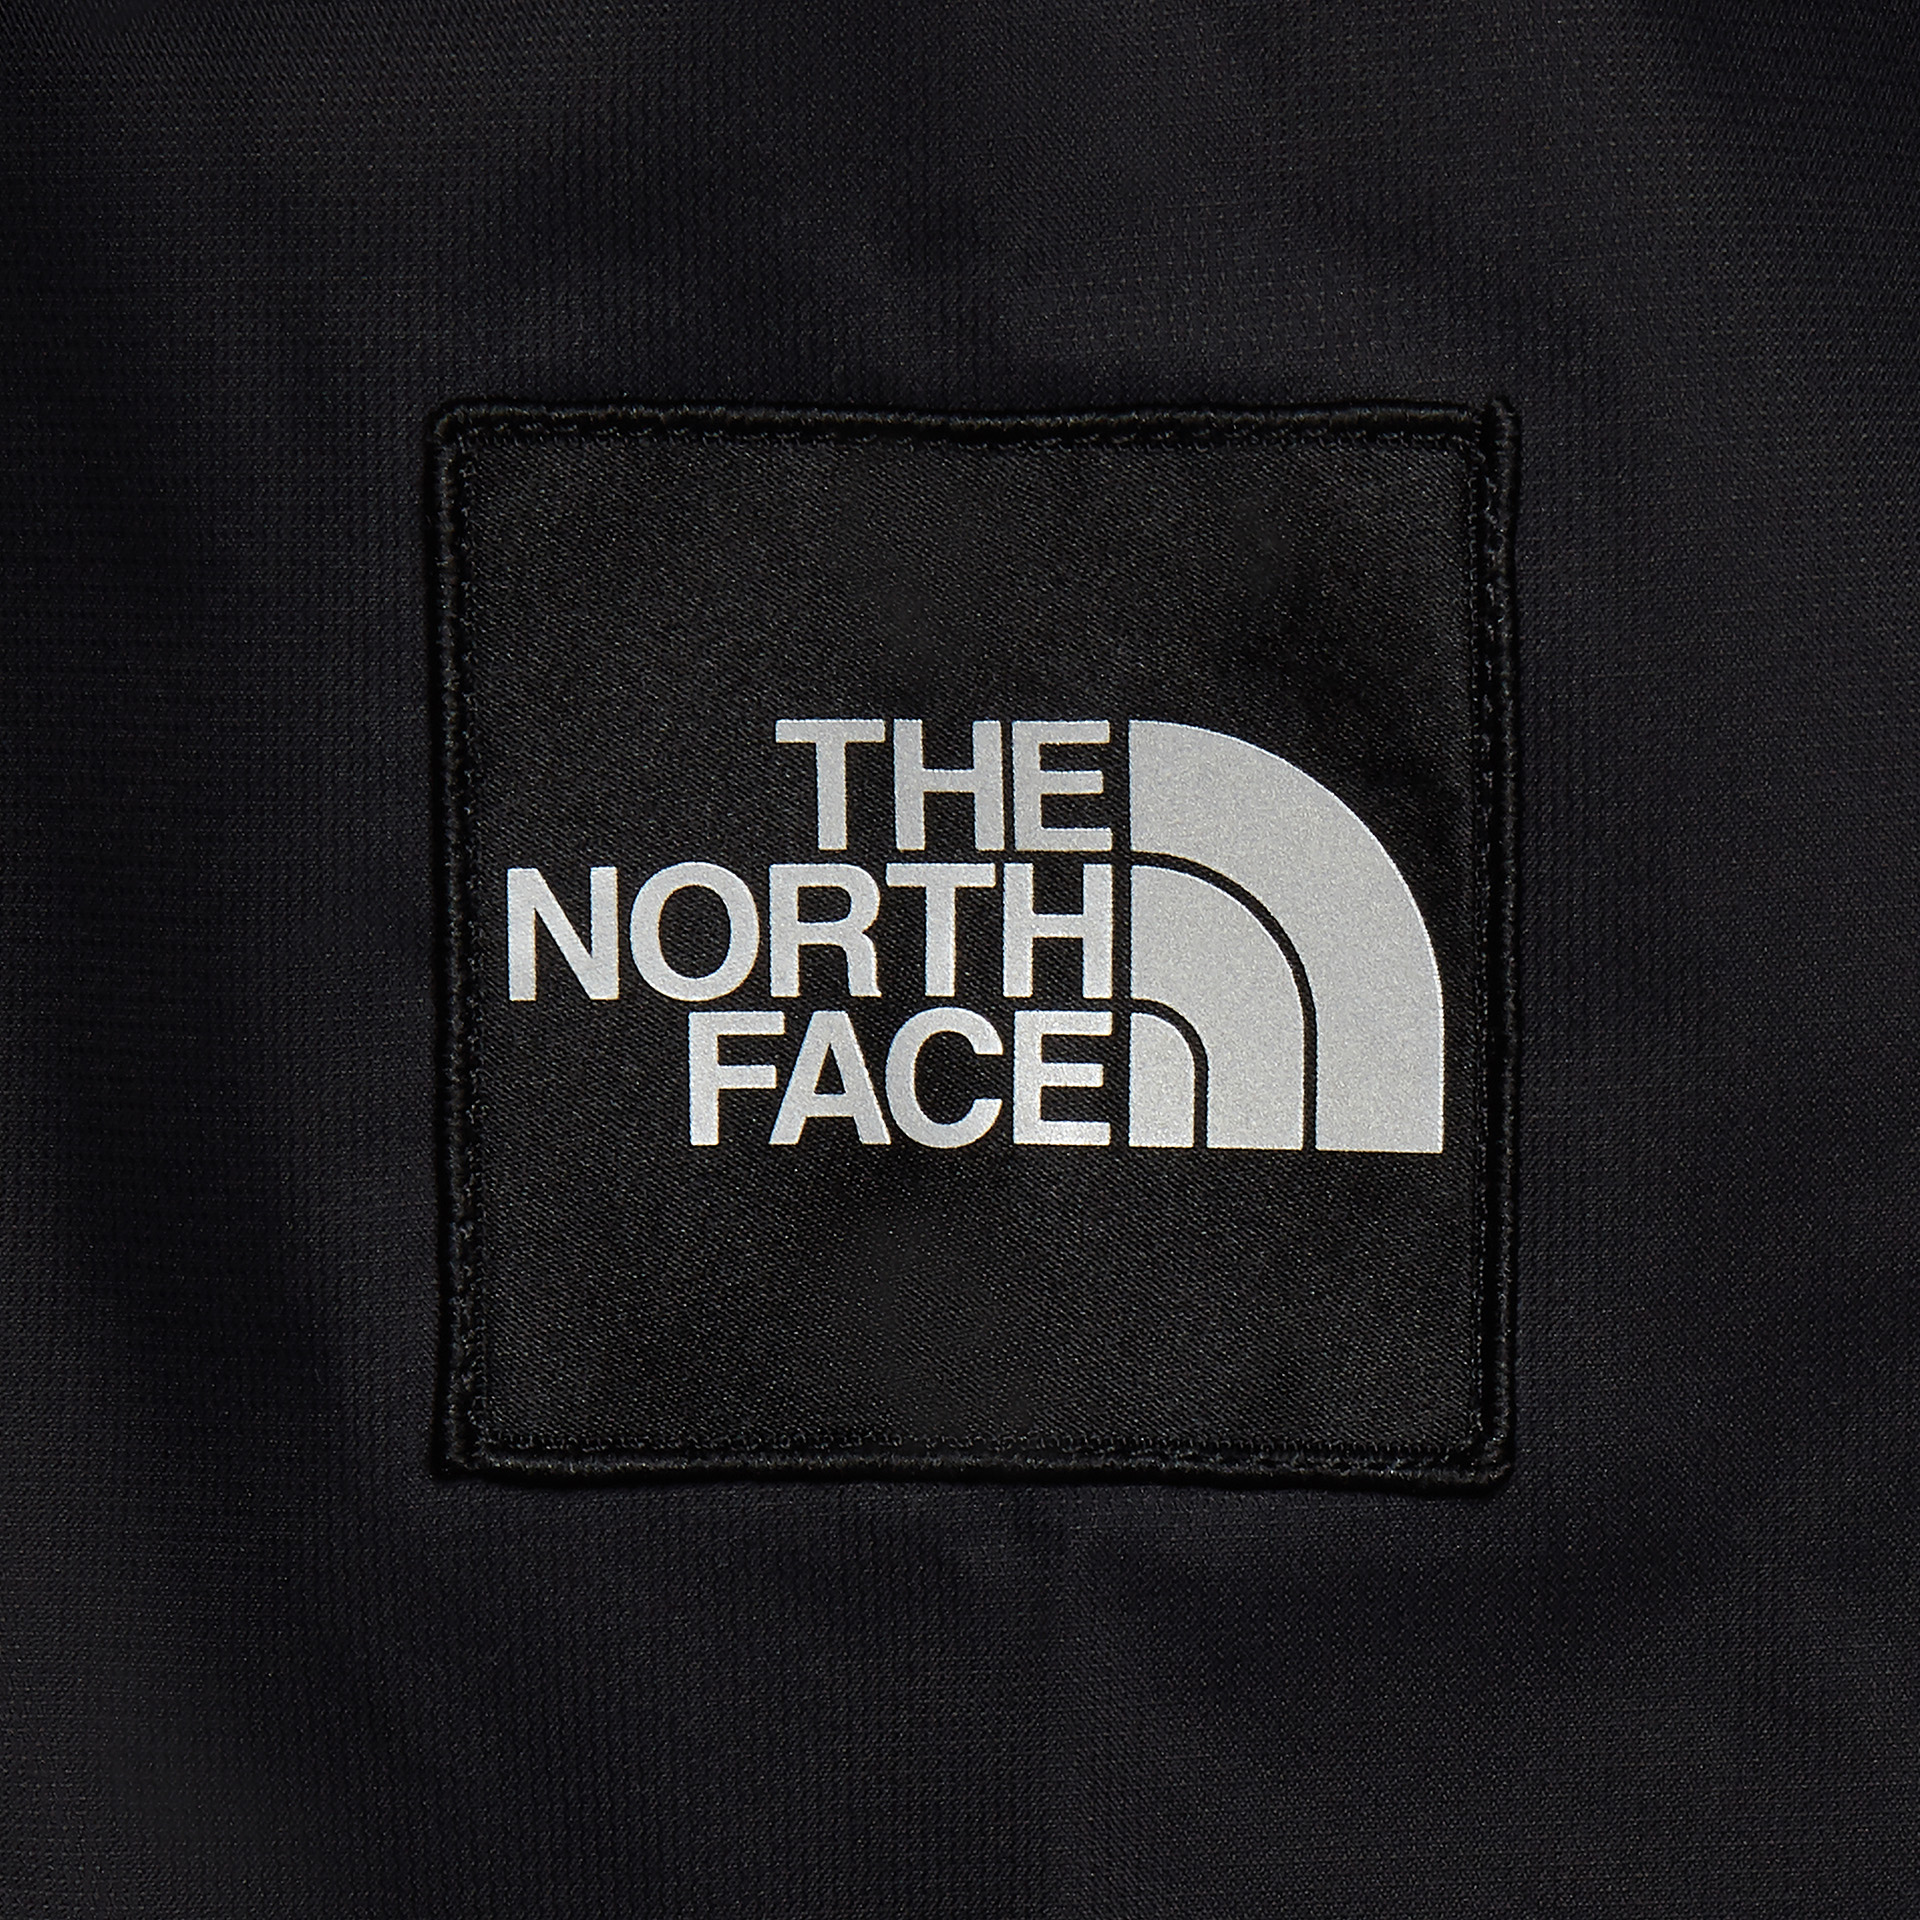 The North Face logo detail of the jumper photography